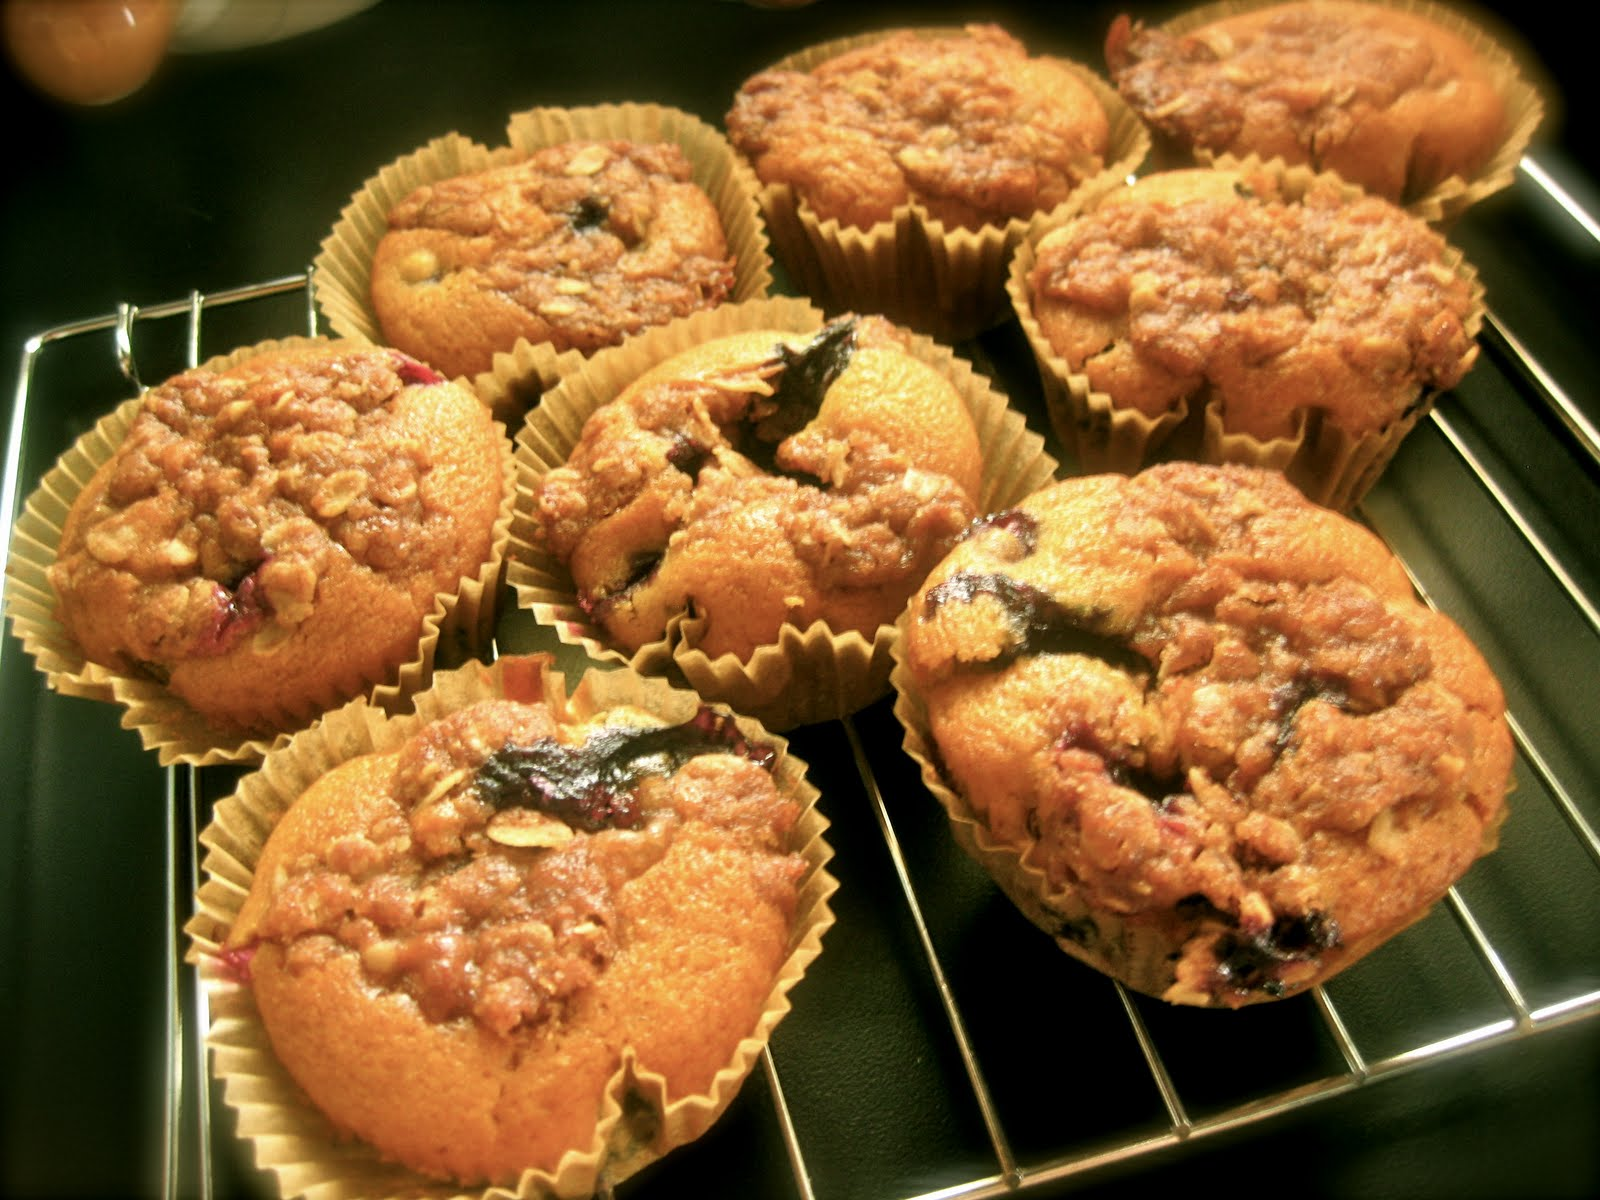 Blueberry muffin sexually transmitted disease